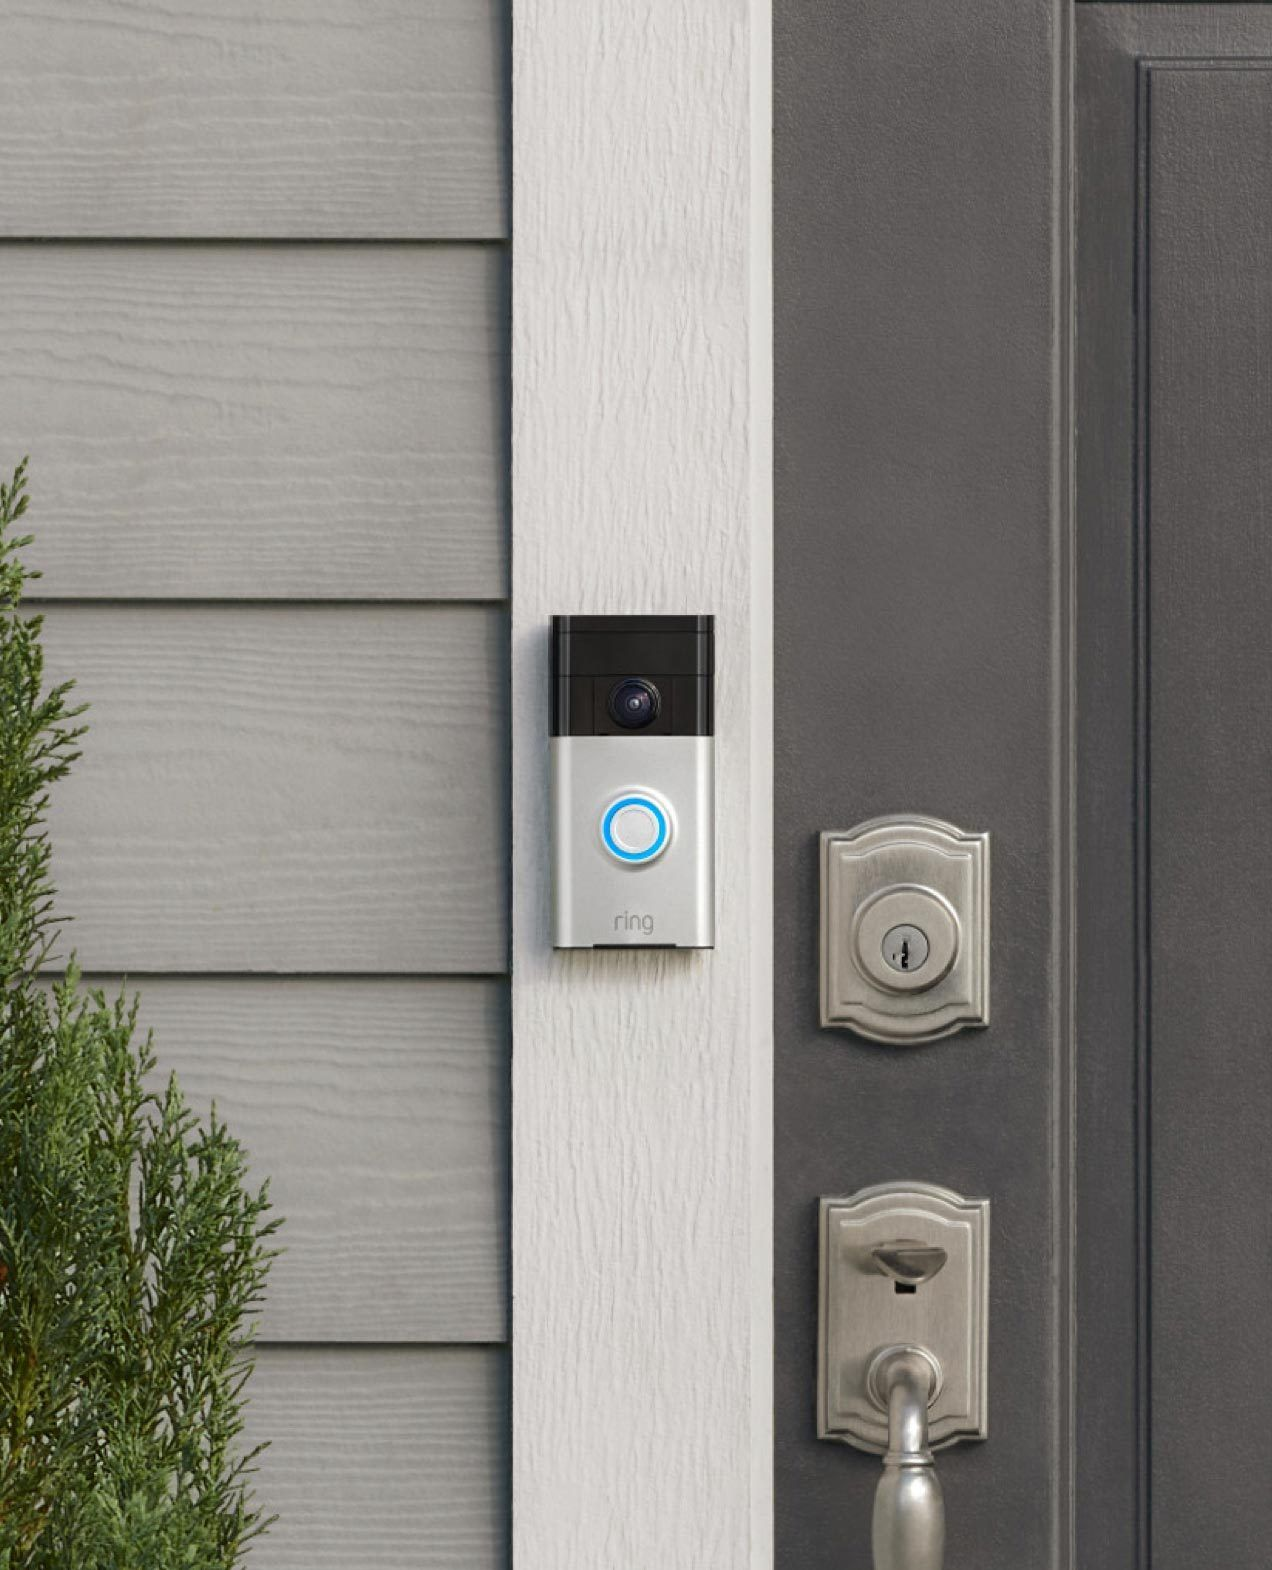 With A Ring Video Doorbell You Re Always Home See Hear And Speak To Whomever Is At Your Door Using Your Smart Doorbell Smart Doorbell Alarm Systems For Home